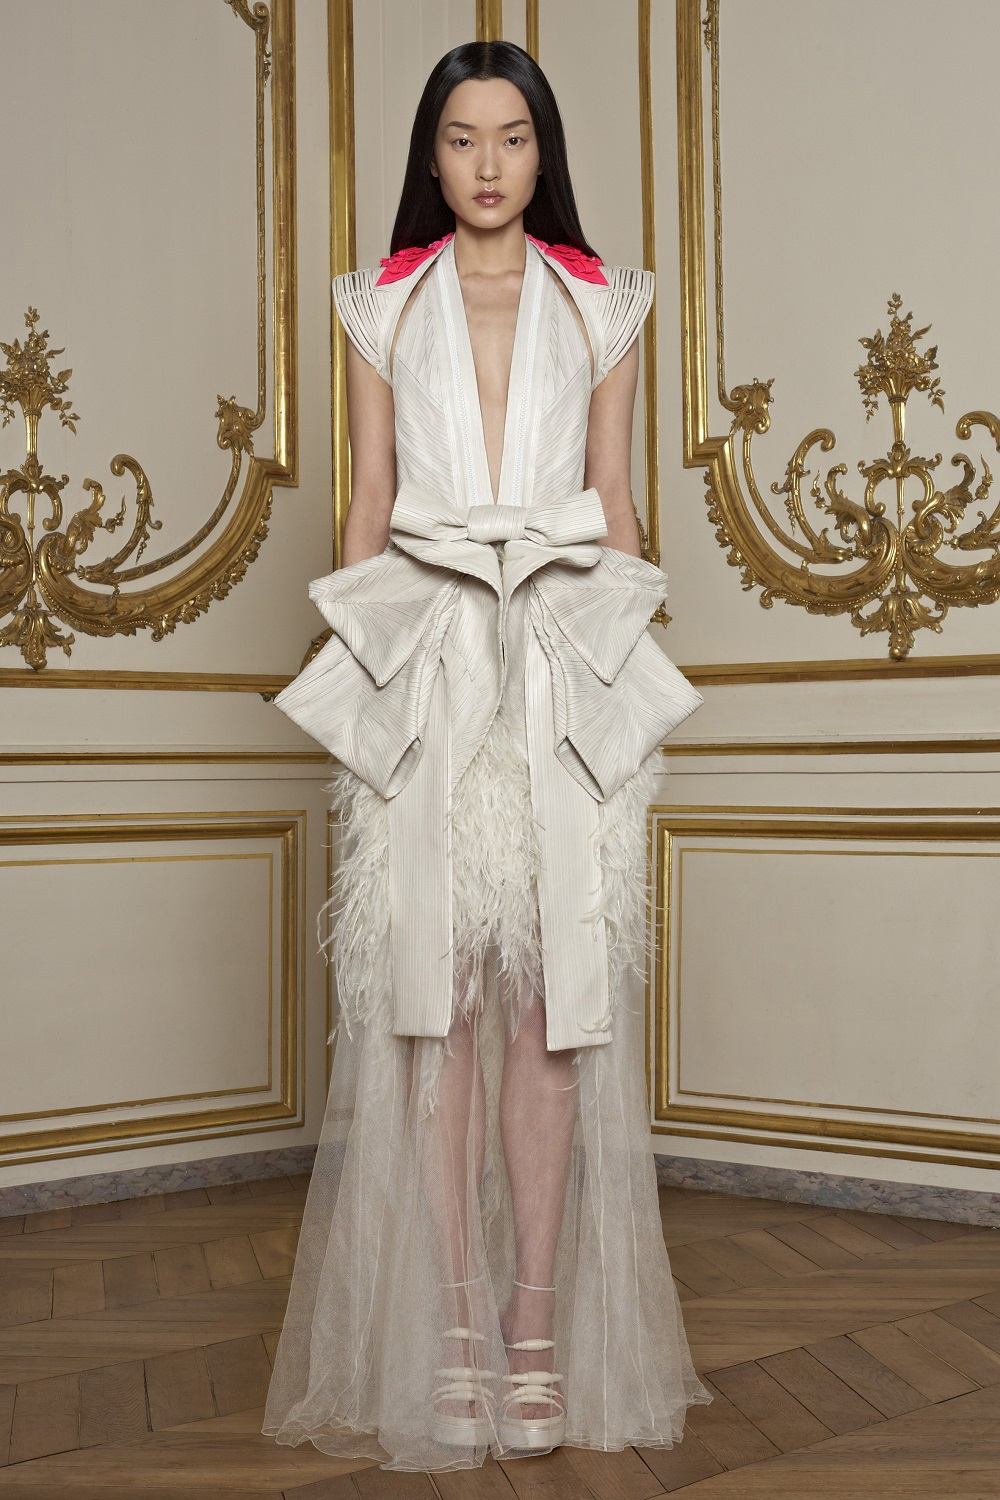 Givenchy haute couture door Riccardo Tisci, lente/zomer 2011 - foto Willy Vanderperre.